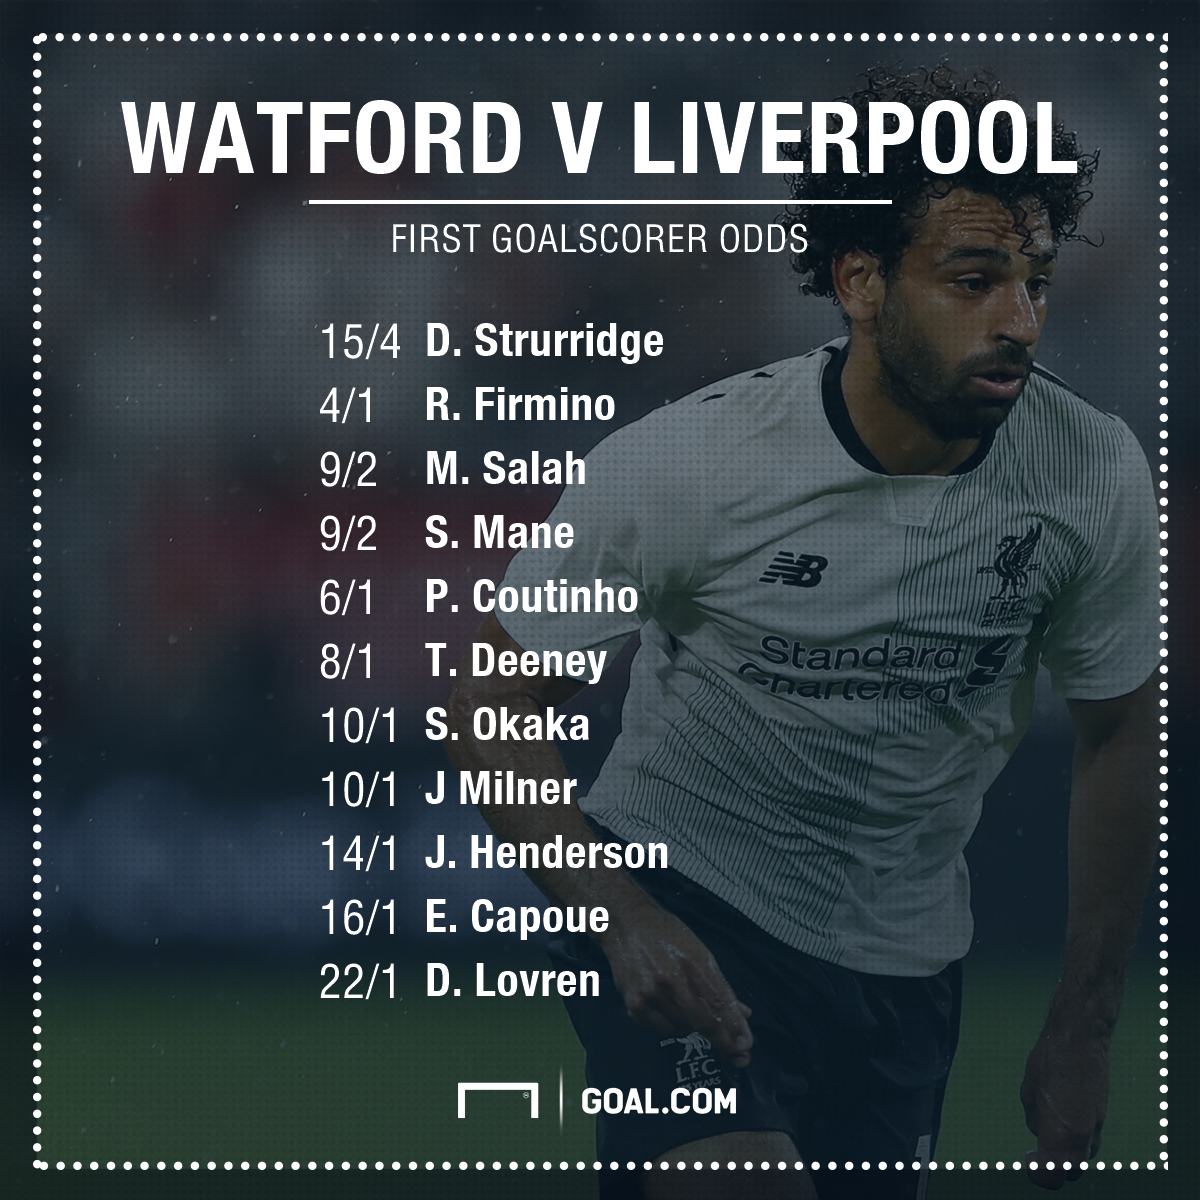 Watford v Liverpool betting